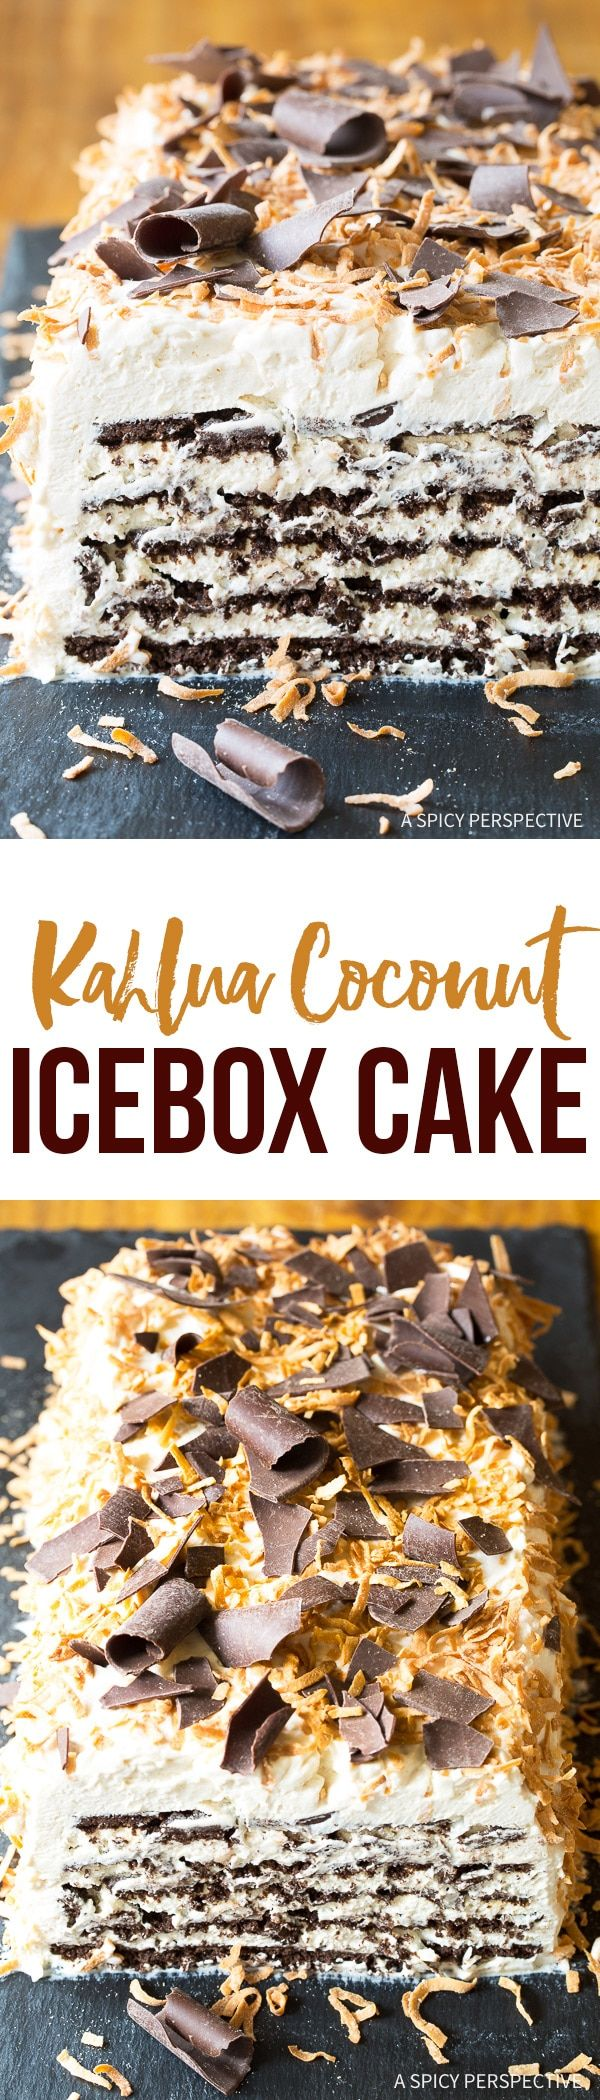 Kahlua Coconut Icebox Cake Recipe for Valentines Day - A simple, yet elegant, boozy dessert that can be made in minutes. Best Ice Box Cake Ever! via @spicyperspectiv